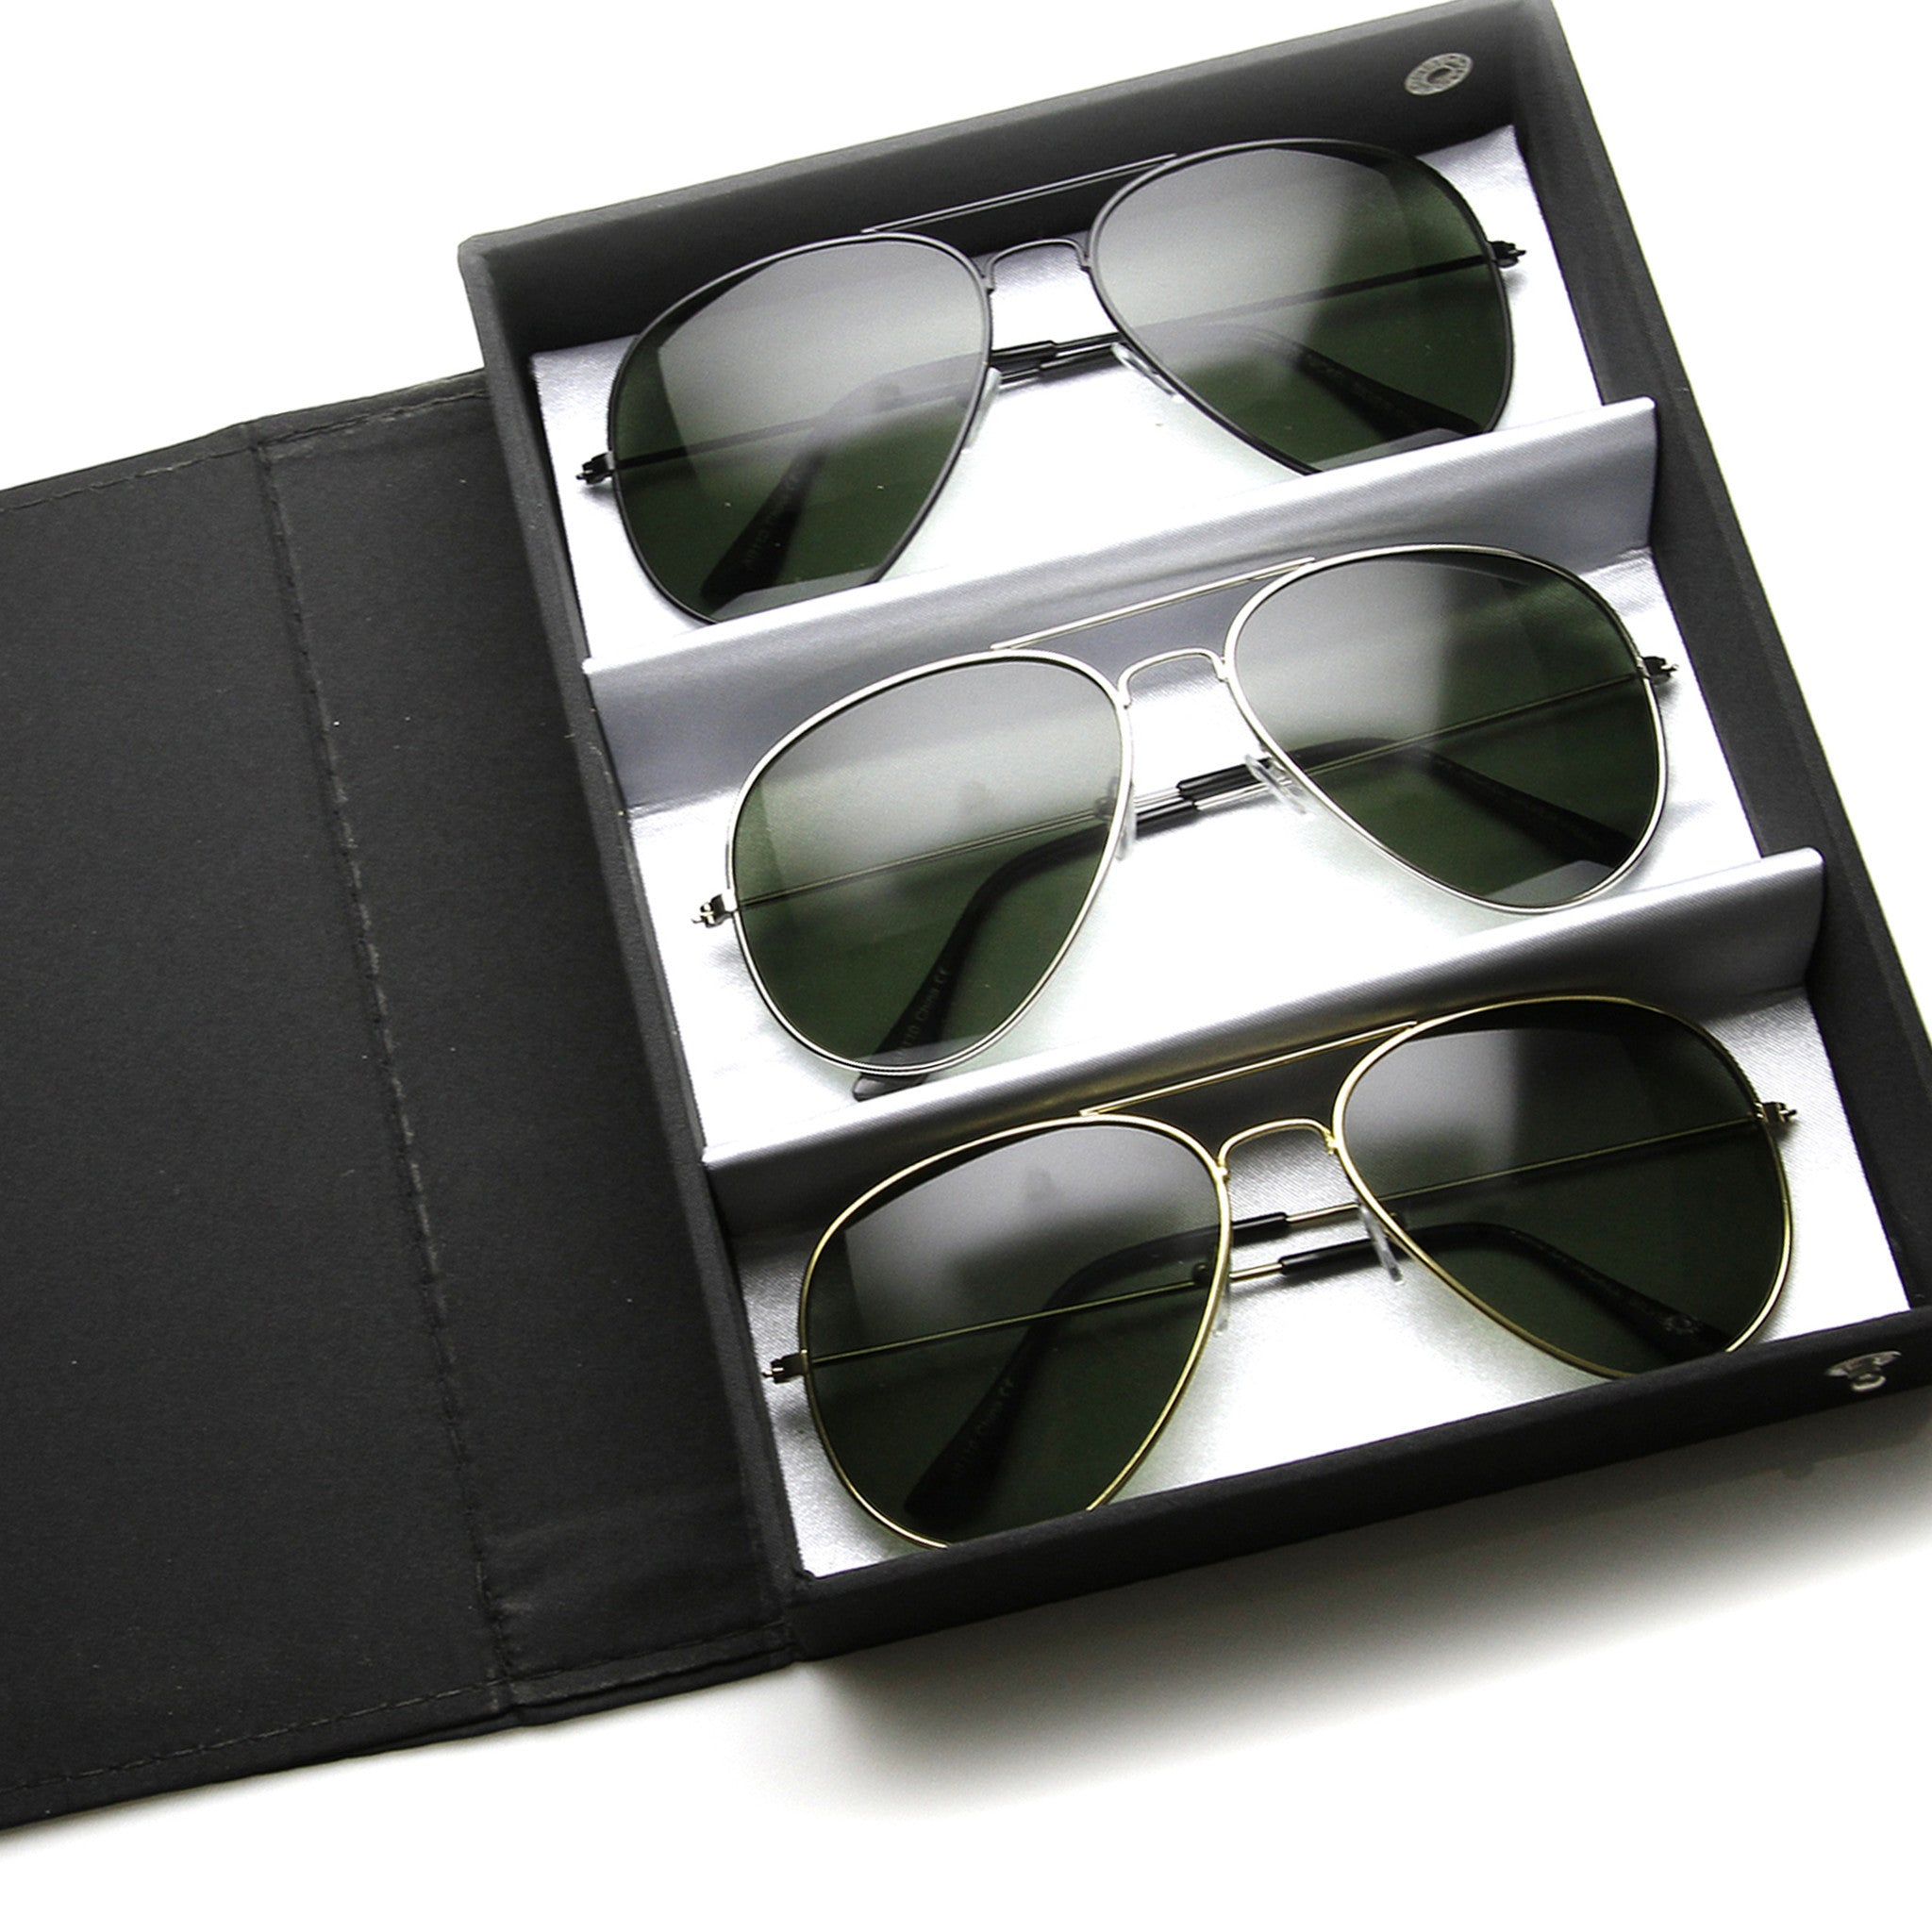 f65a87187 Limited Edition Classic Metal Military Aviator Sunglasses + Travel Case 1041